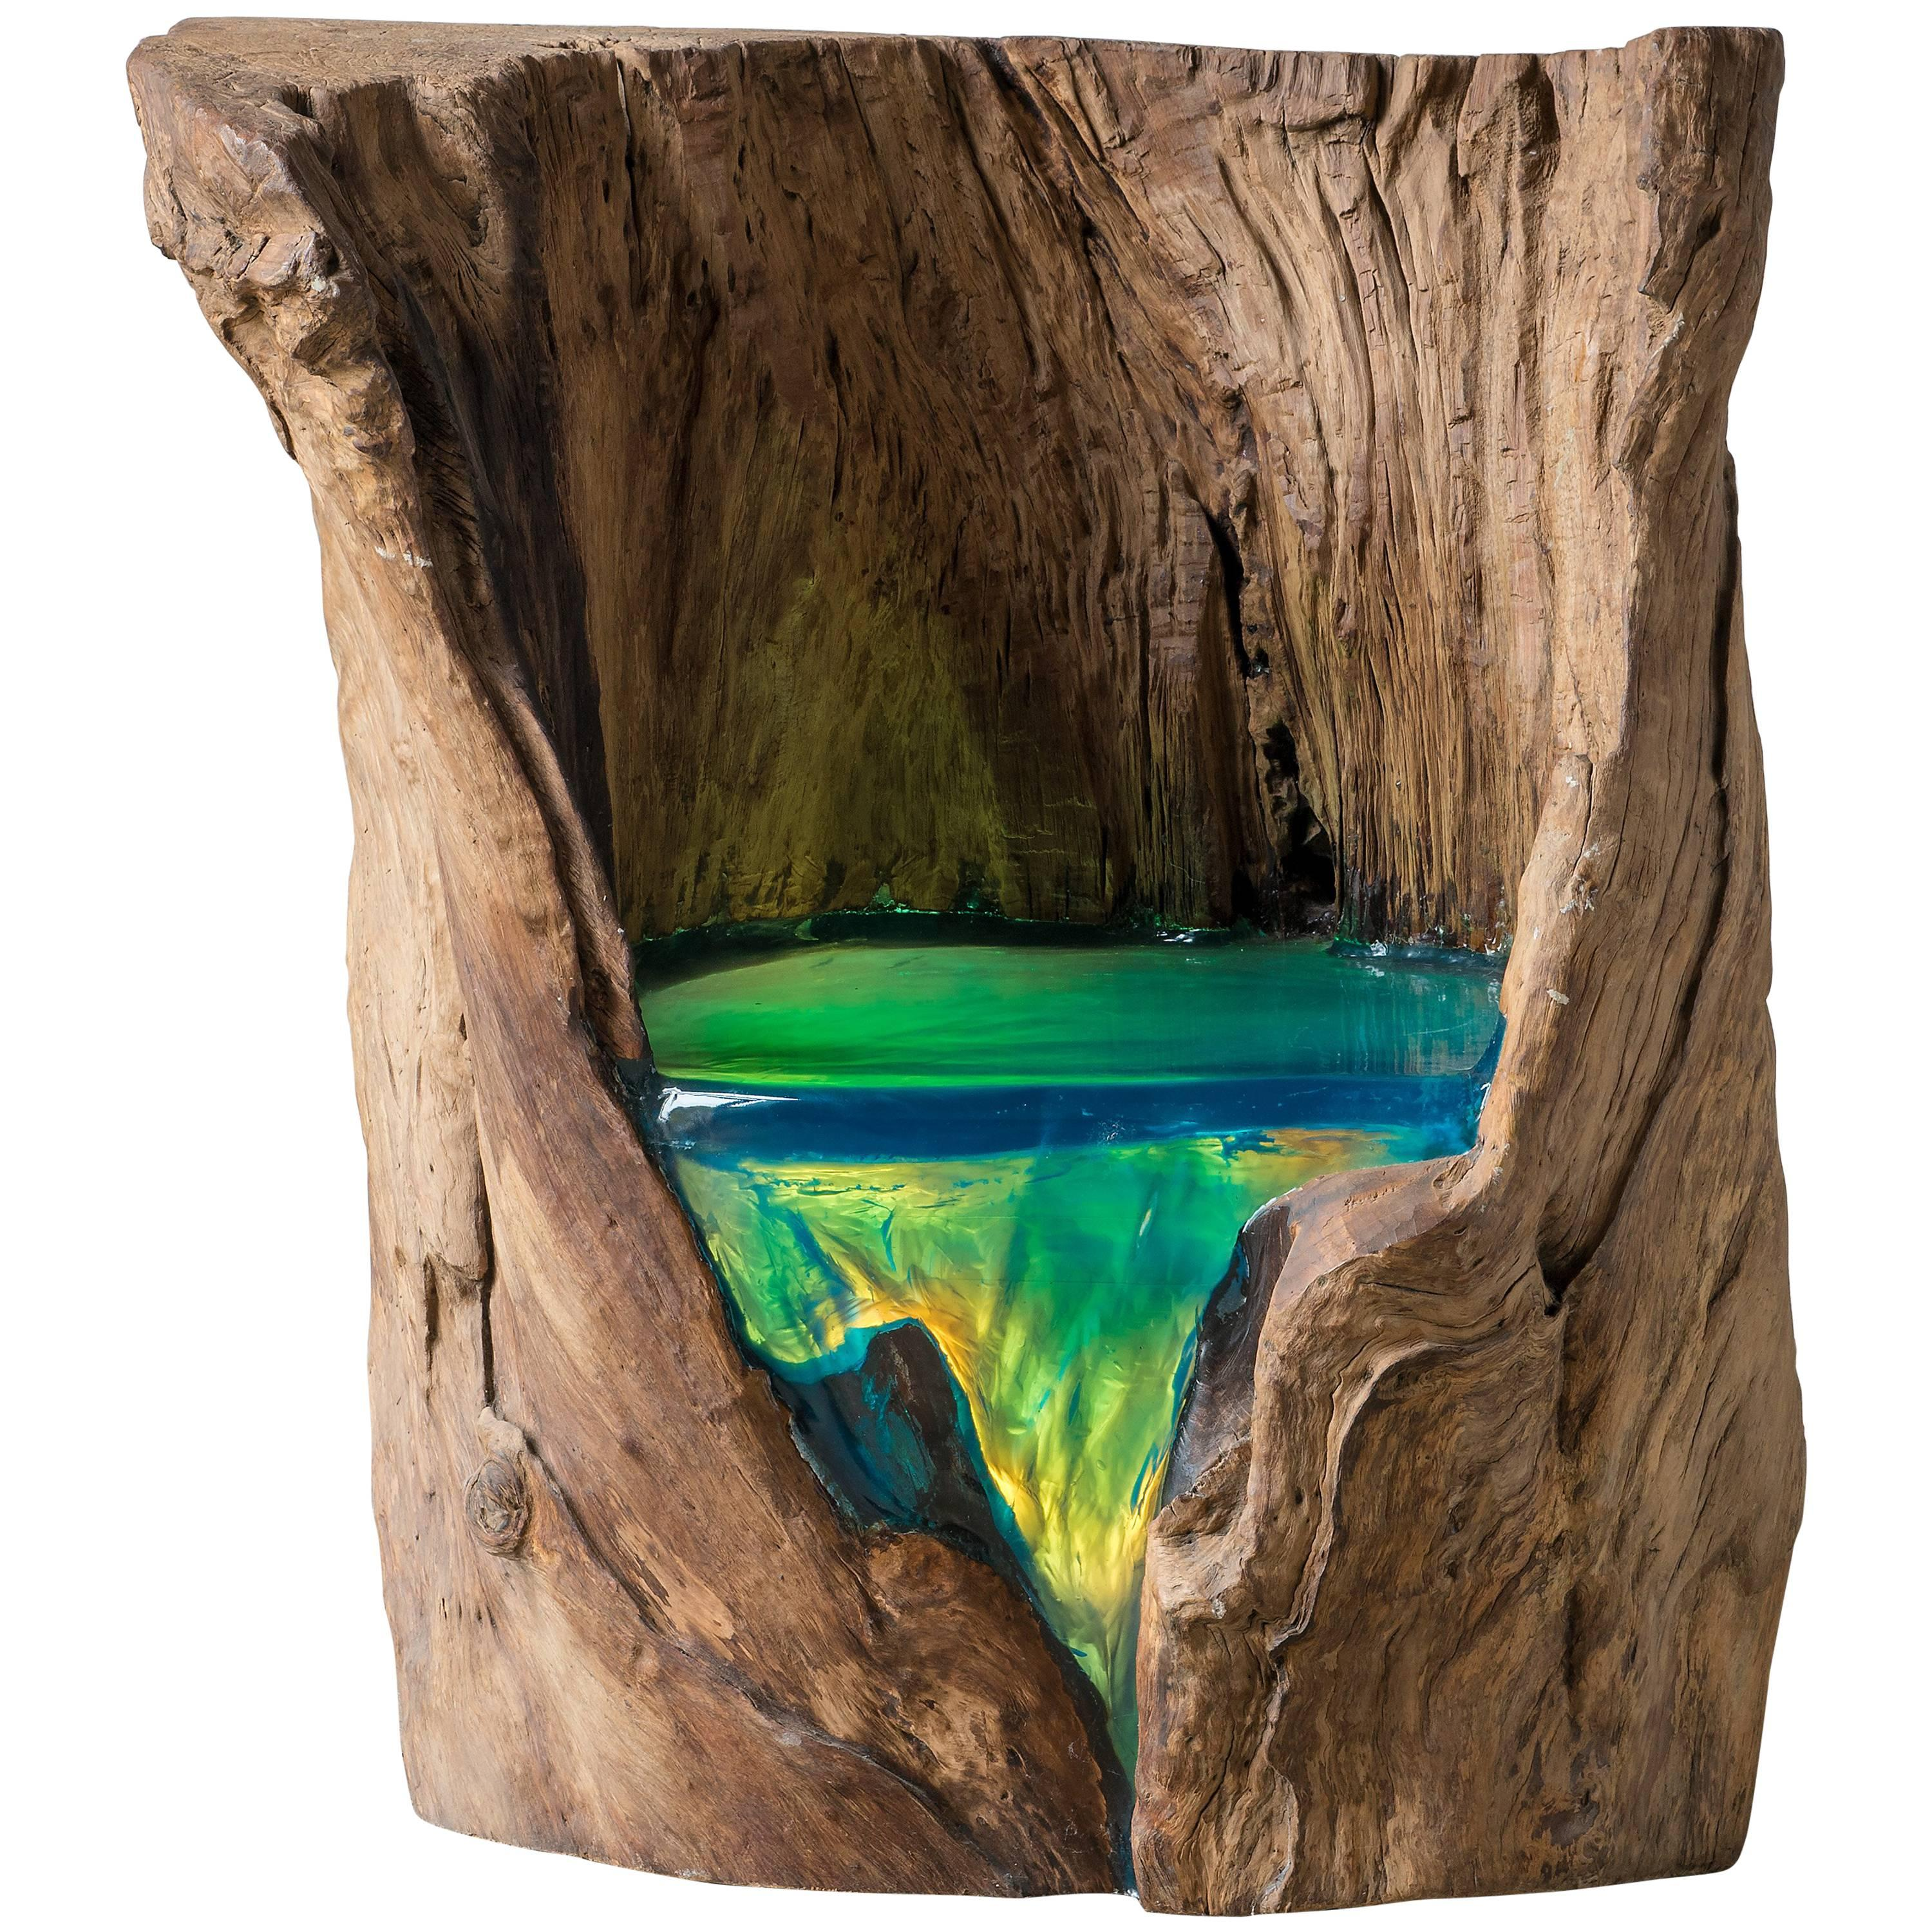 Organic Olive Tree Chair Made Of Stump And Resin For Sale